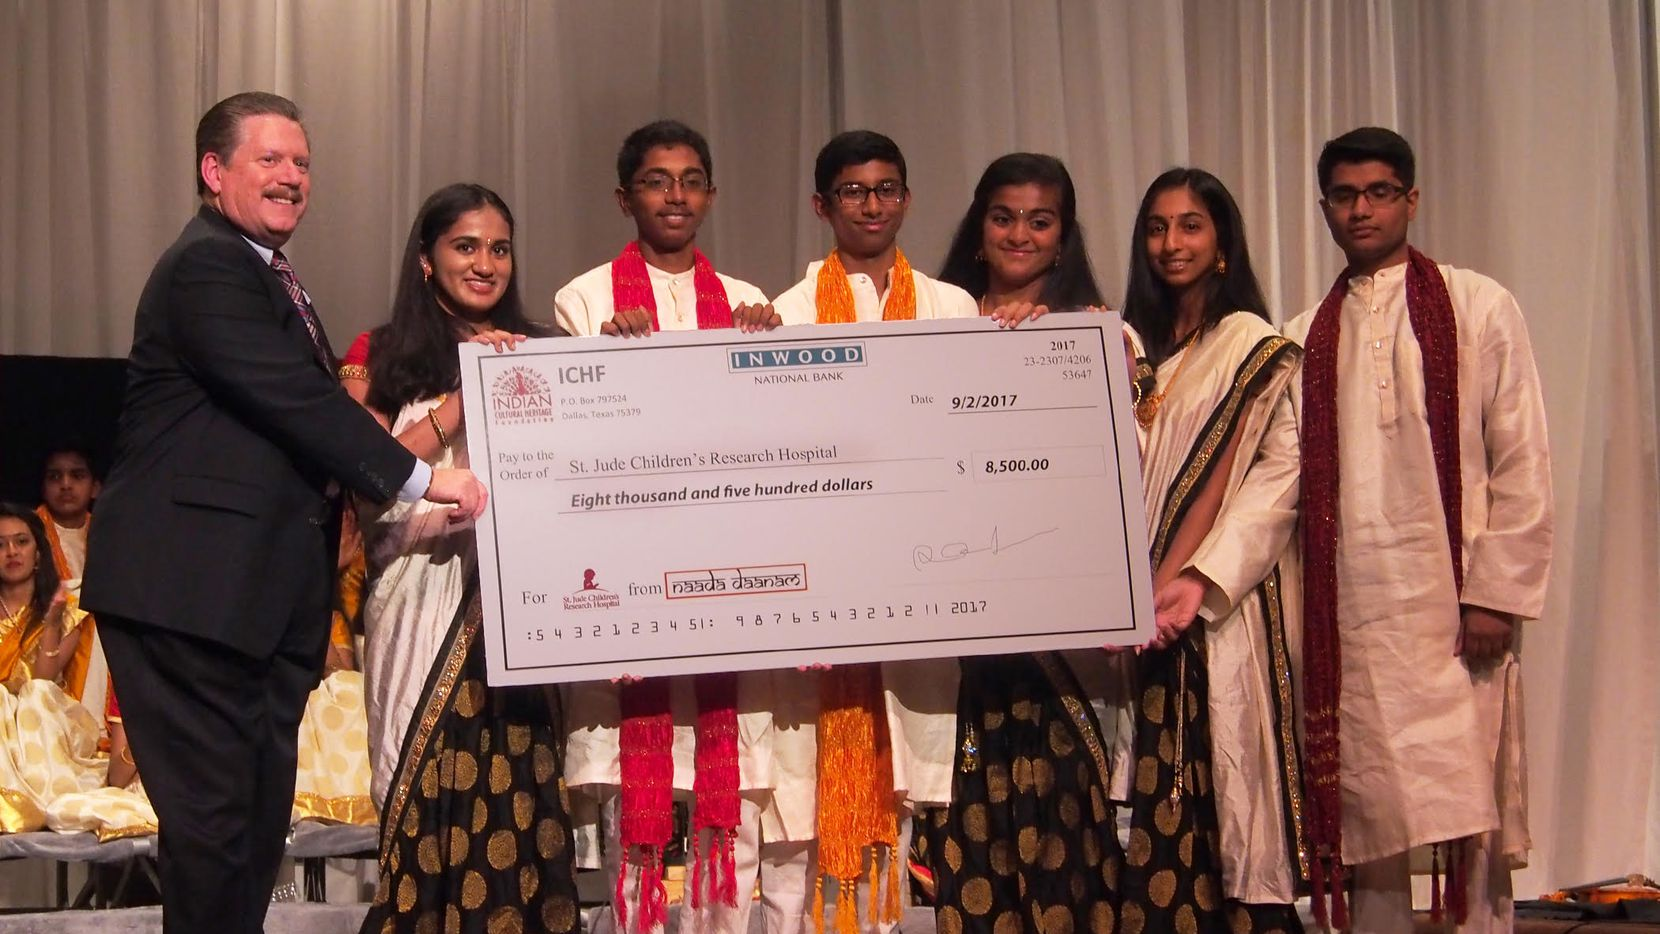 Mesquite Mayor Stan Pickett, with six students who raised funds for St. Jude Children's Research Hospital by presenting an Indian classical music event at the Mesquite Arts Center.